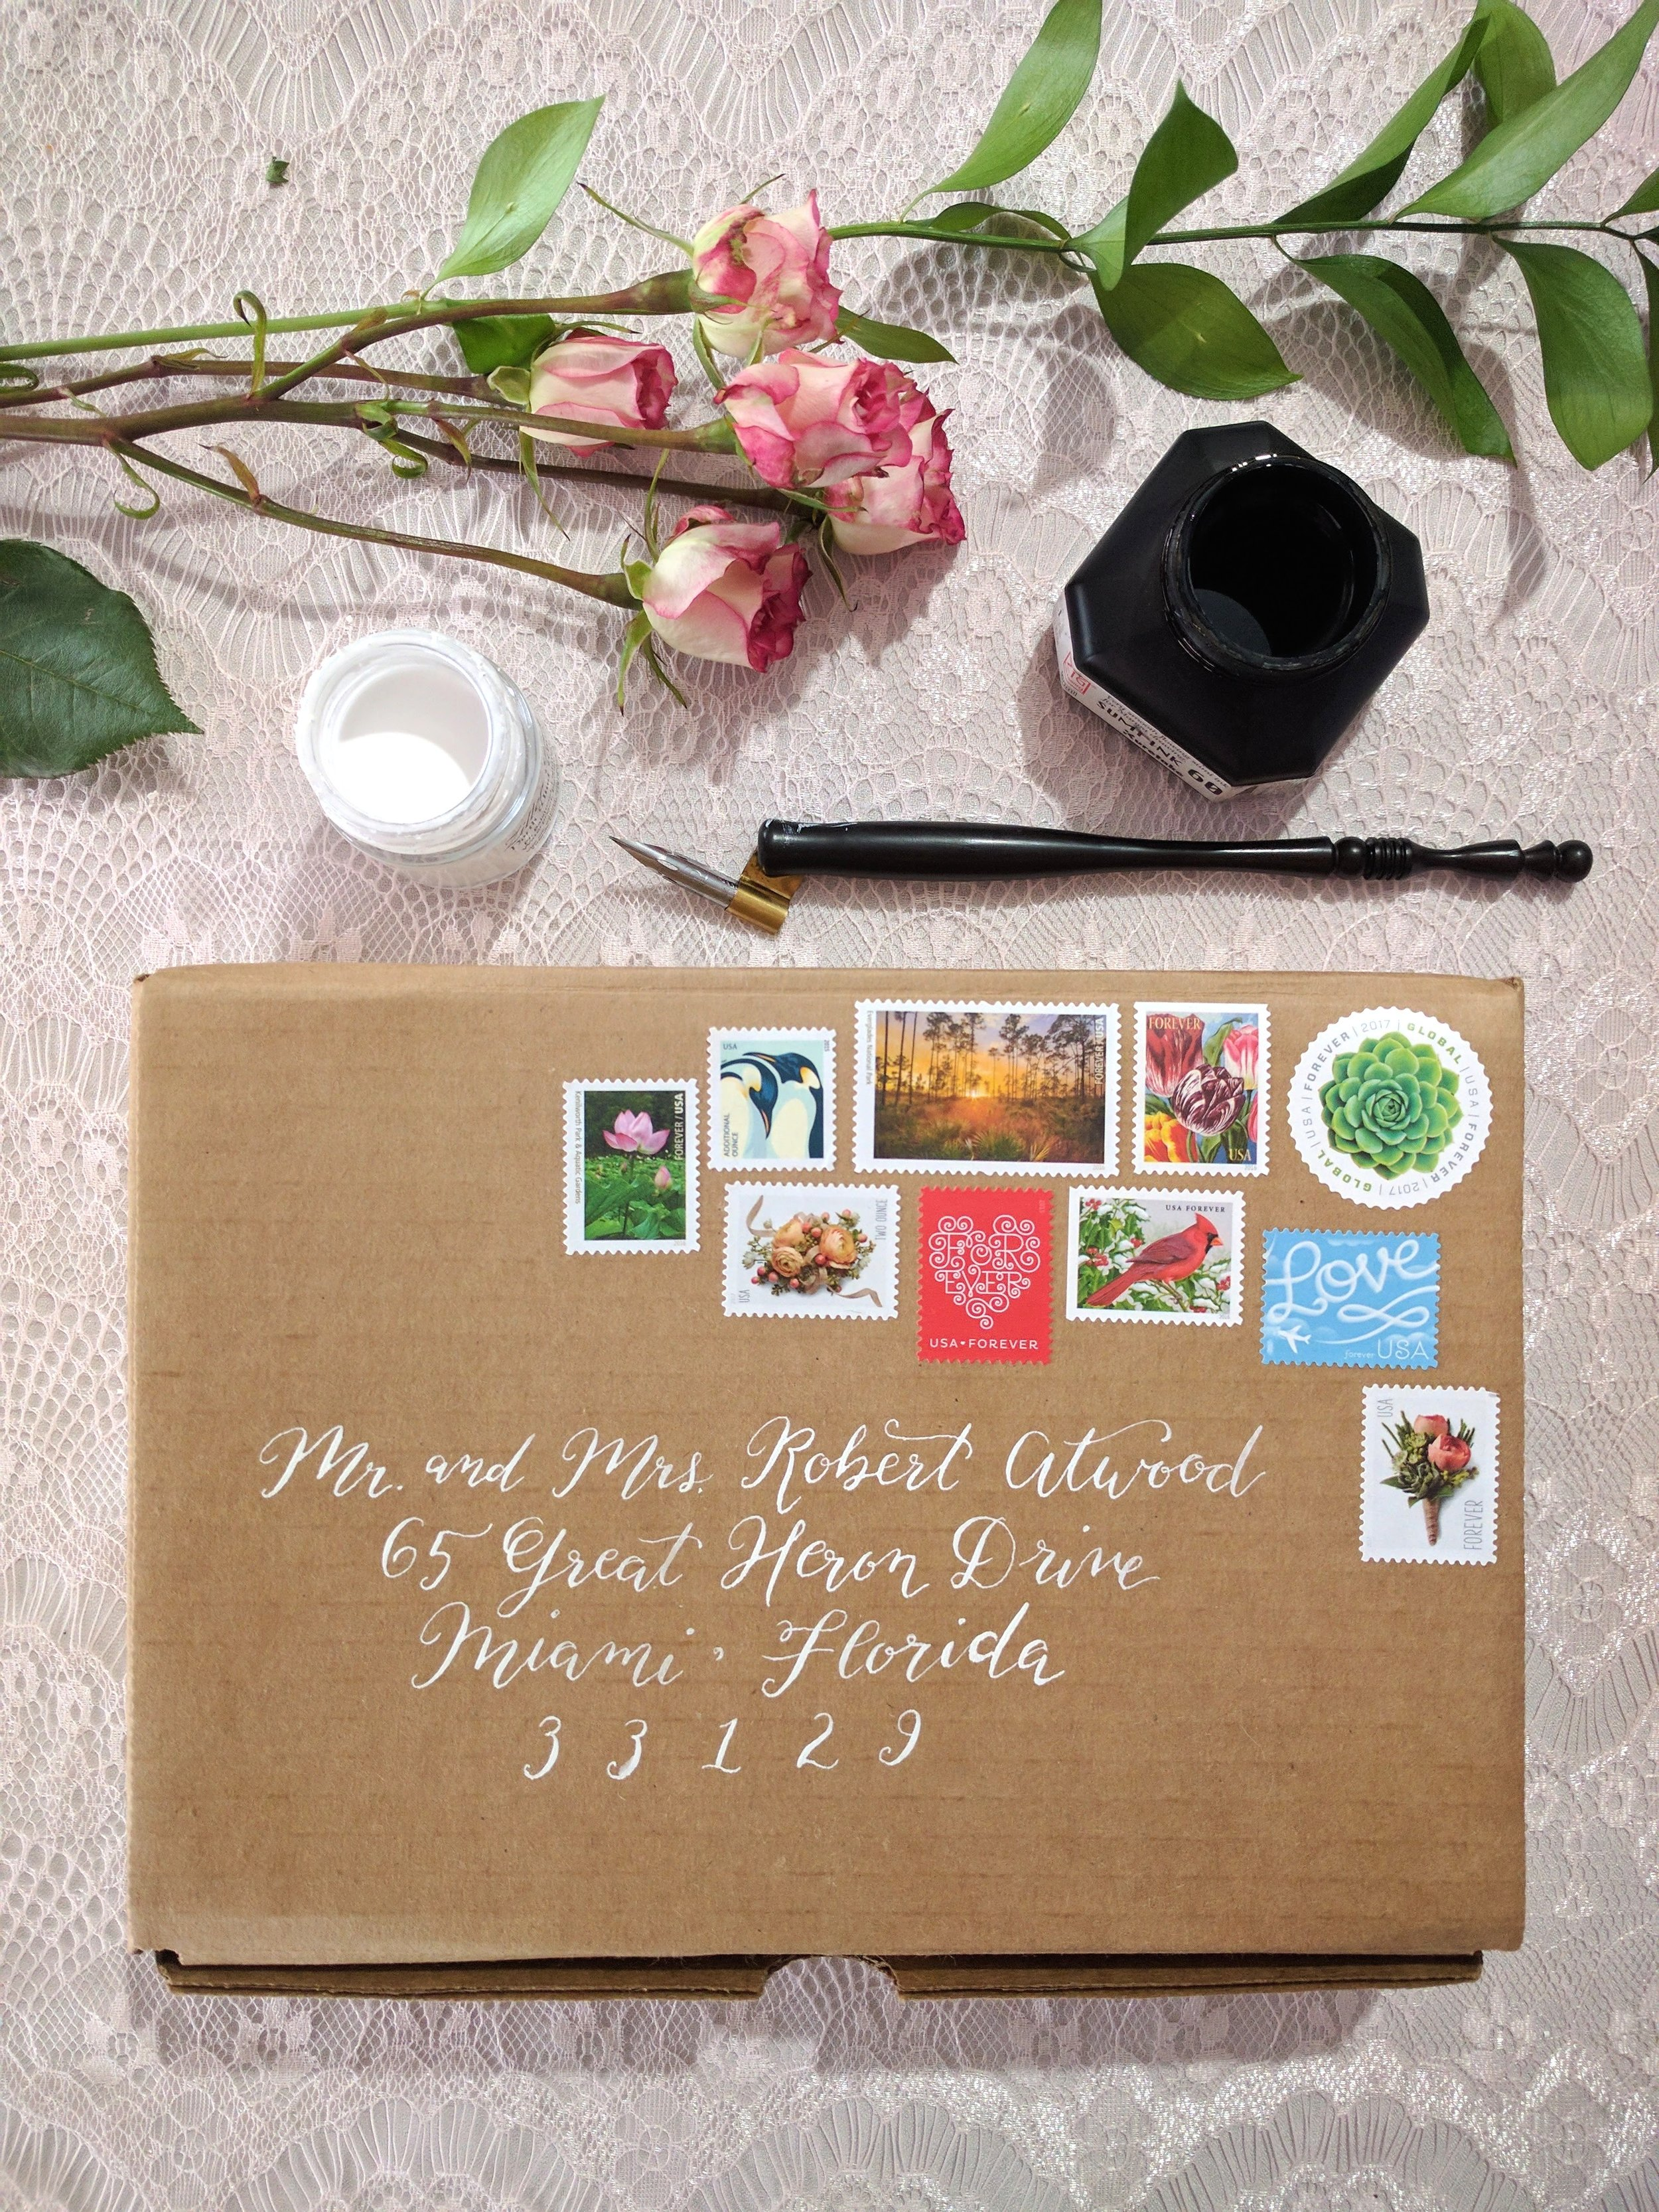 Handcrafted Luxury - We care about the details. Quality matters!With available letterpress printing, hand painted watercolors, specialty art papers, pointed pen calligraphy, and much, much more, your invitations will be the epitome of luxury.Everything is customizable, and anything is possible.